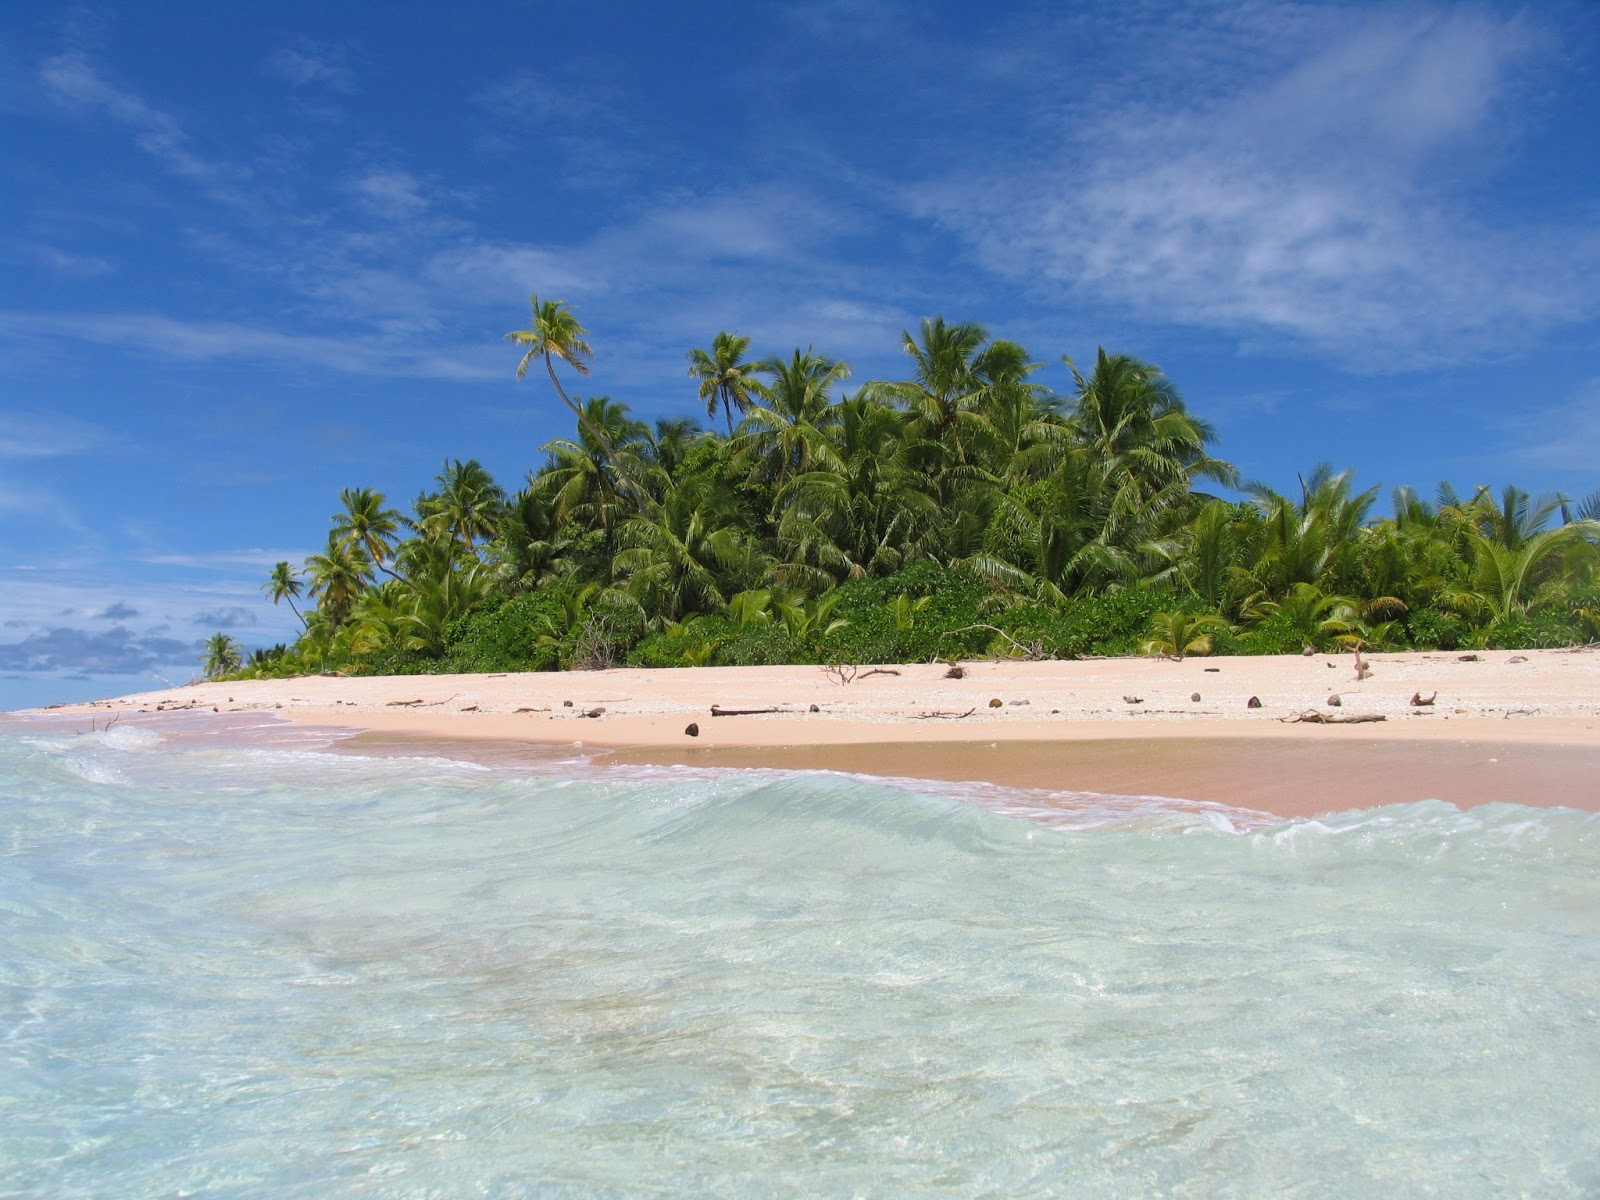 Tuvalu islands travel guide tobias kappel fongafale is one of the well developed cities in tuvalu tuvalu has an international airport in funafuti which acts as the main gateway to tuvalu publicscrutiny Image collections